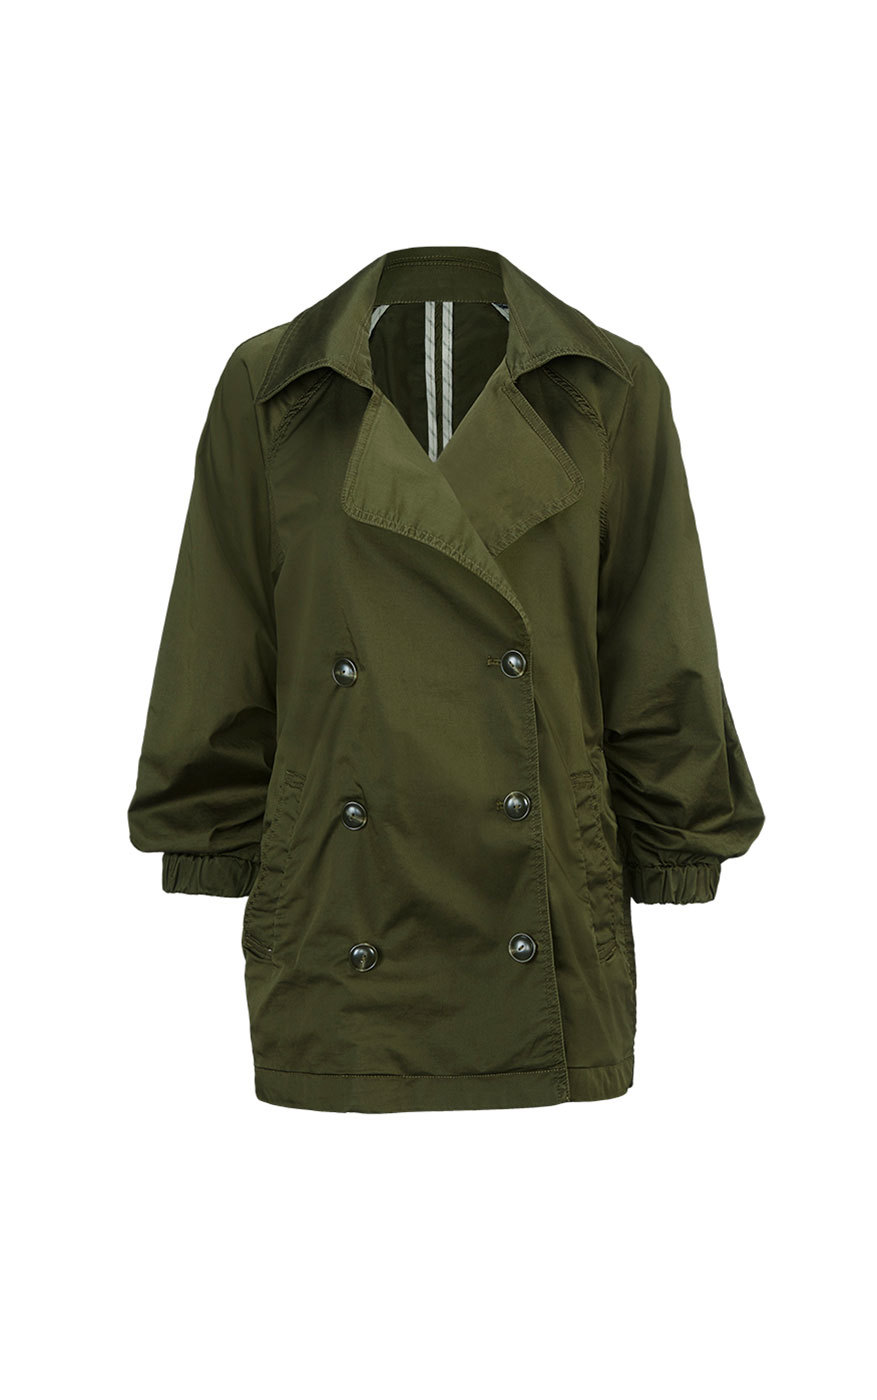 cabi's Expedition Jacket